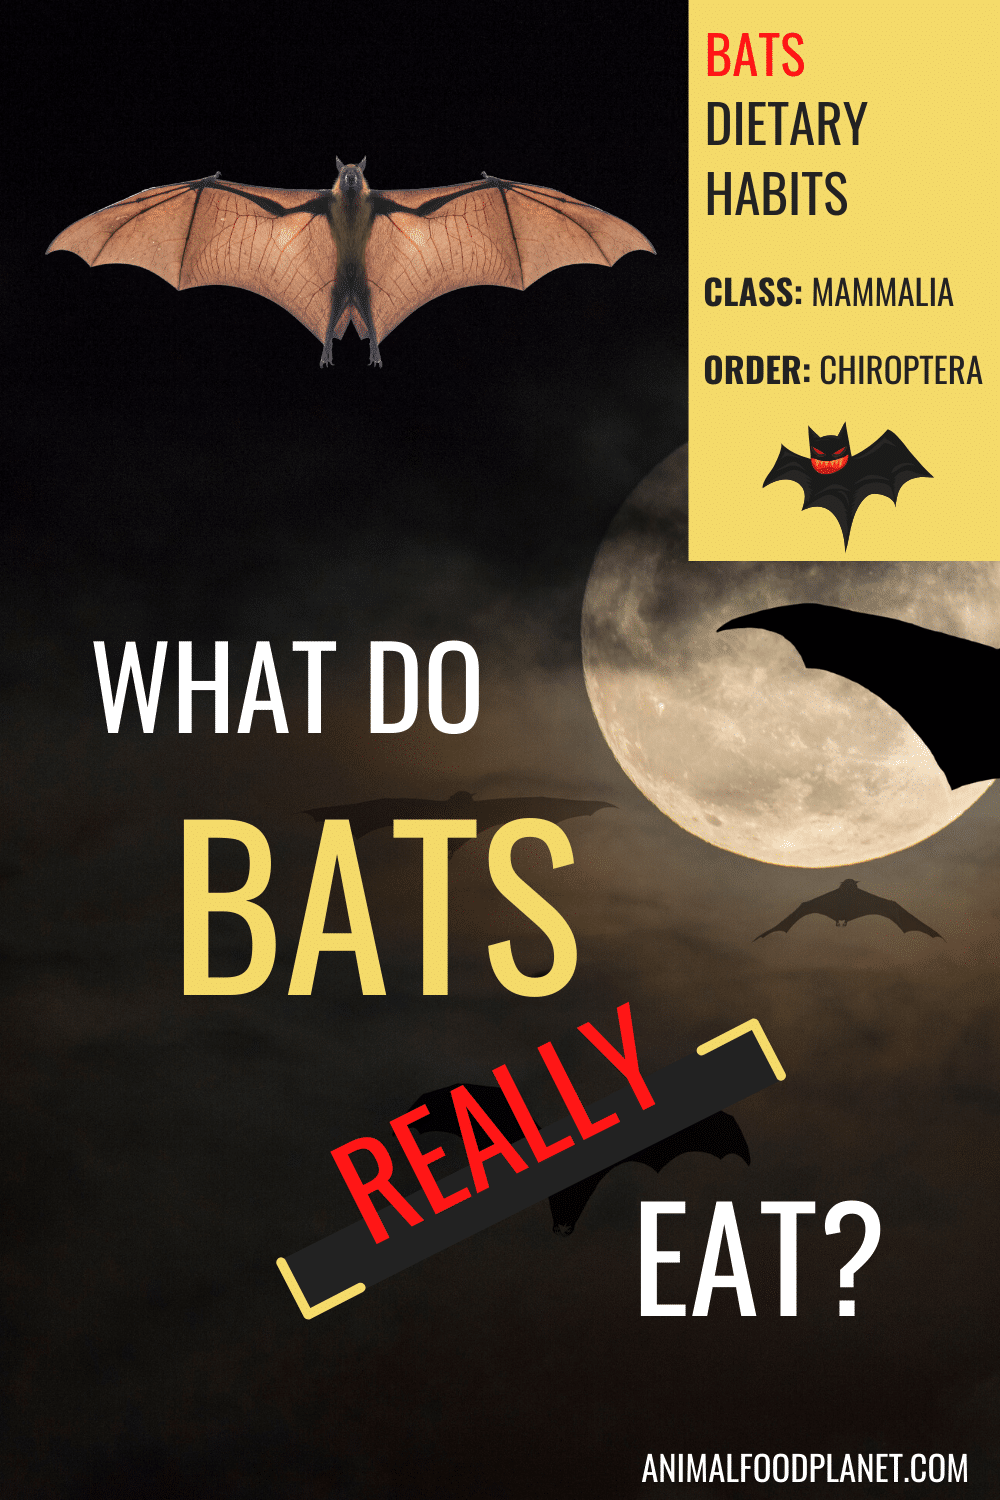 What Do Bats Really Eat?